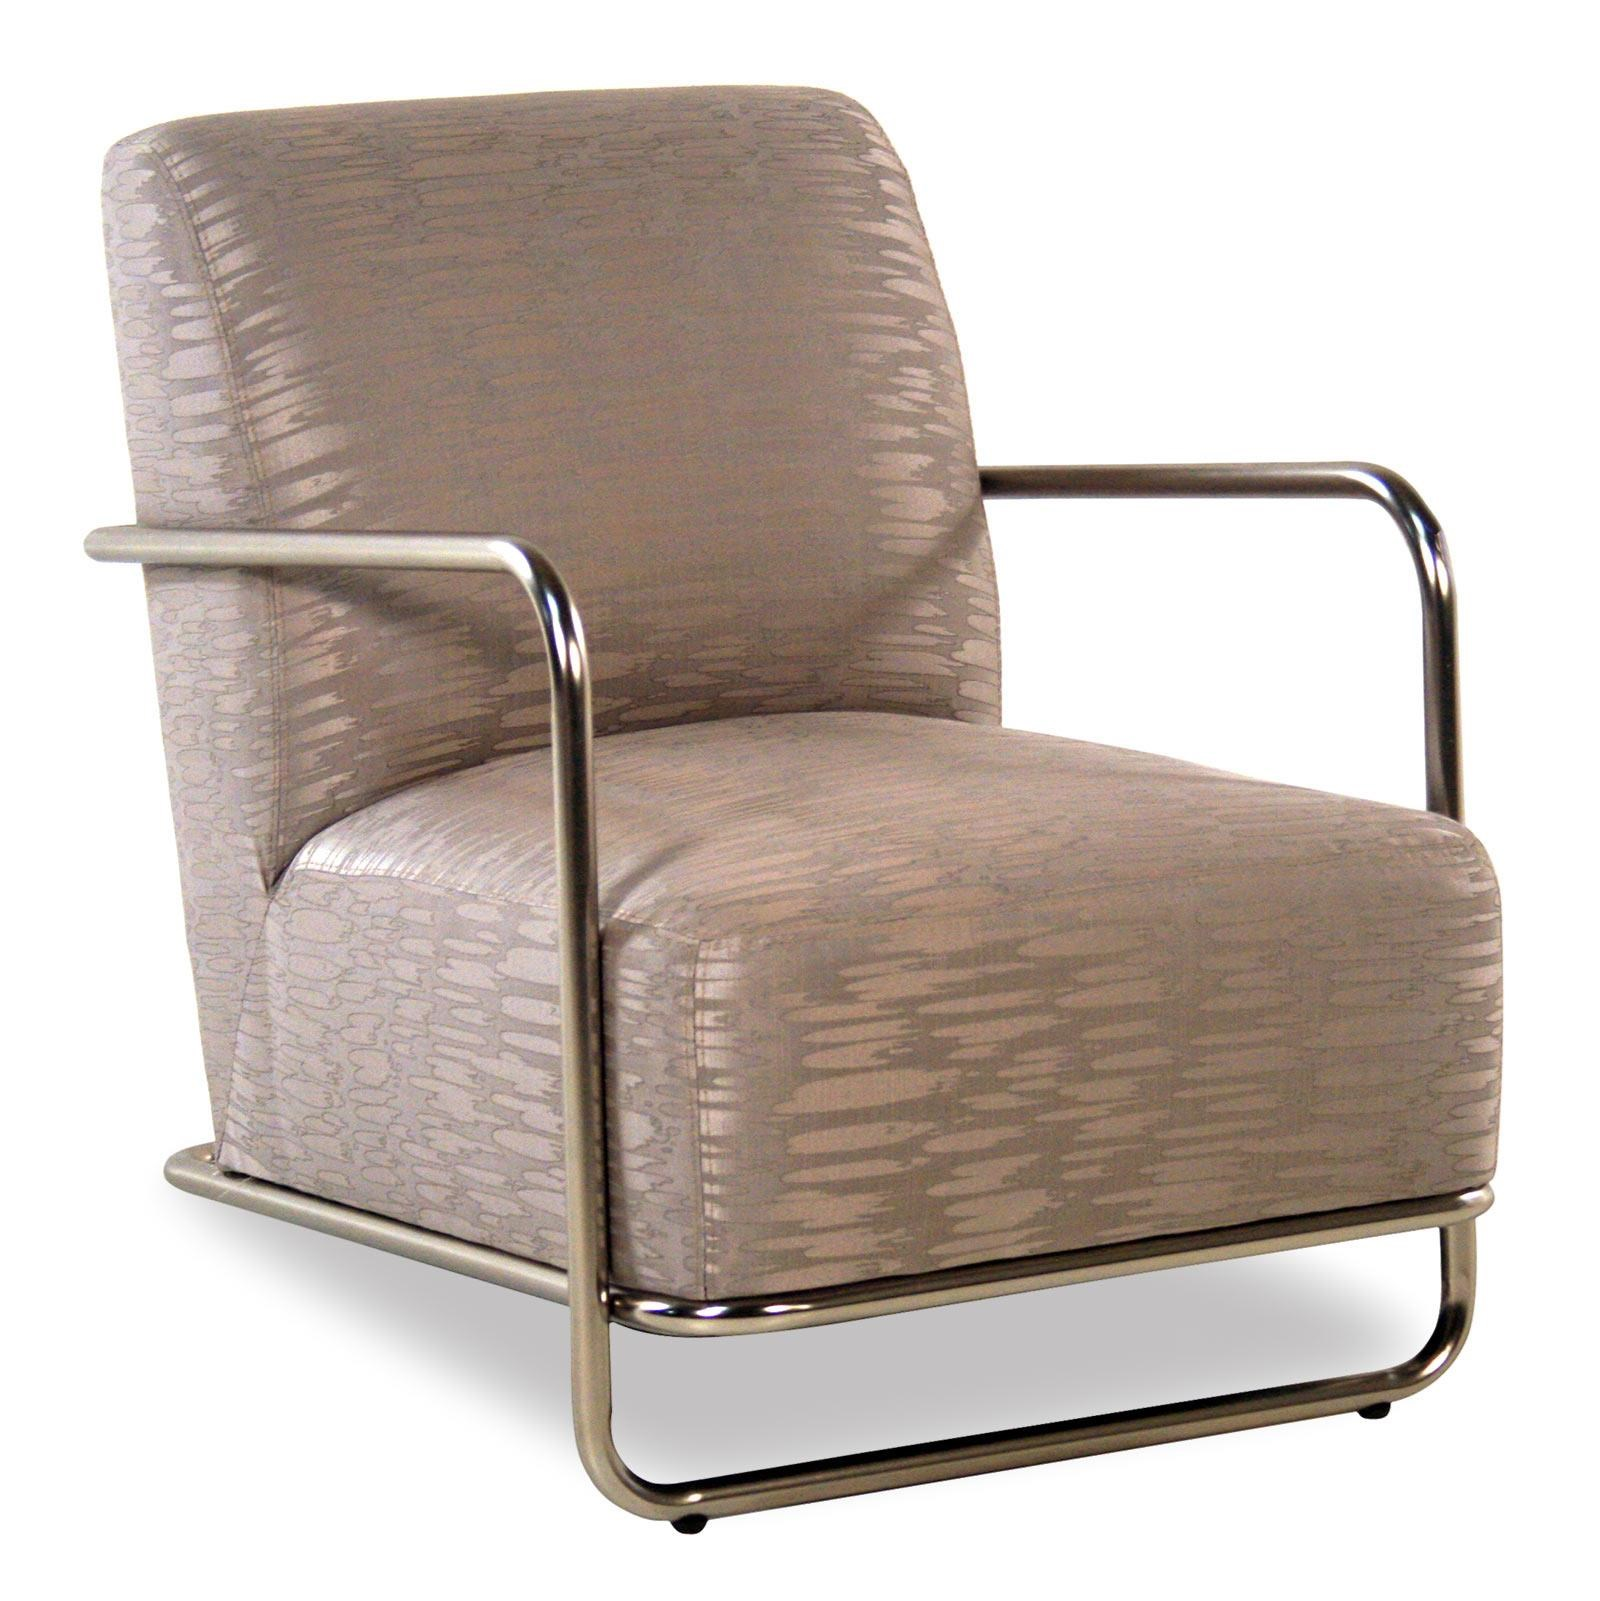 Cisco Accentuates Brushed Nickel Accent Chair - Item Number: 30657-DREVACHROME